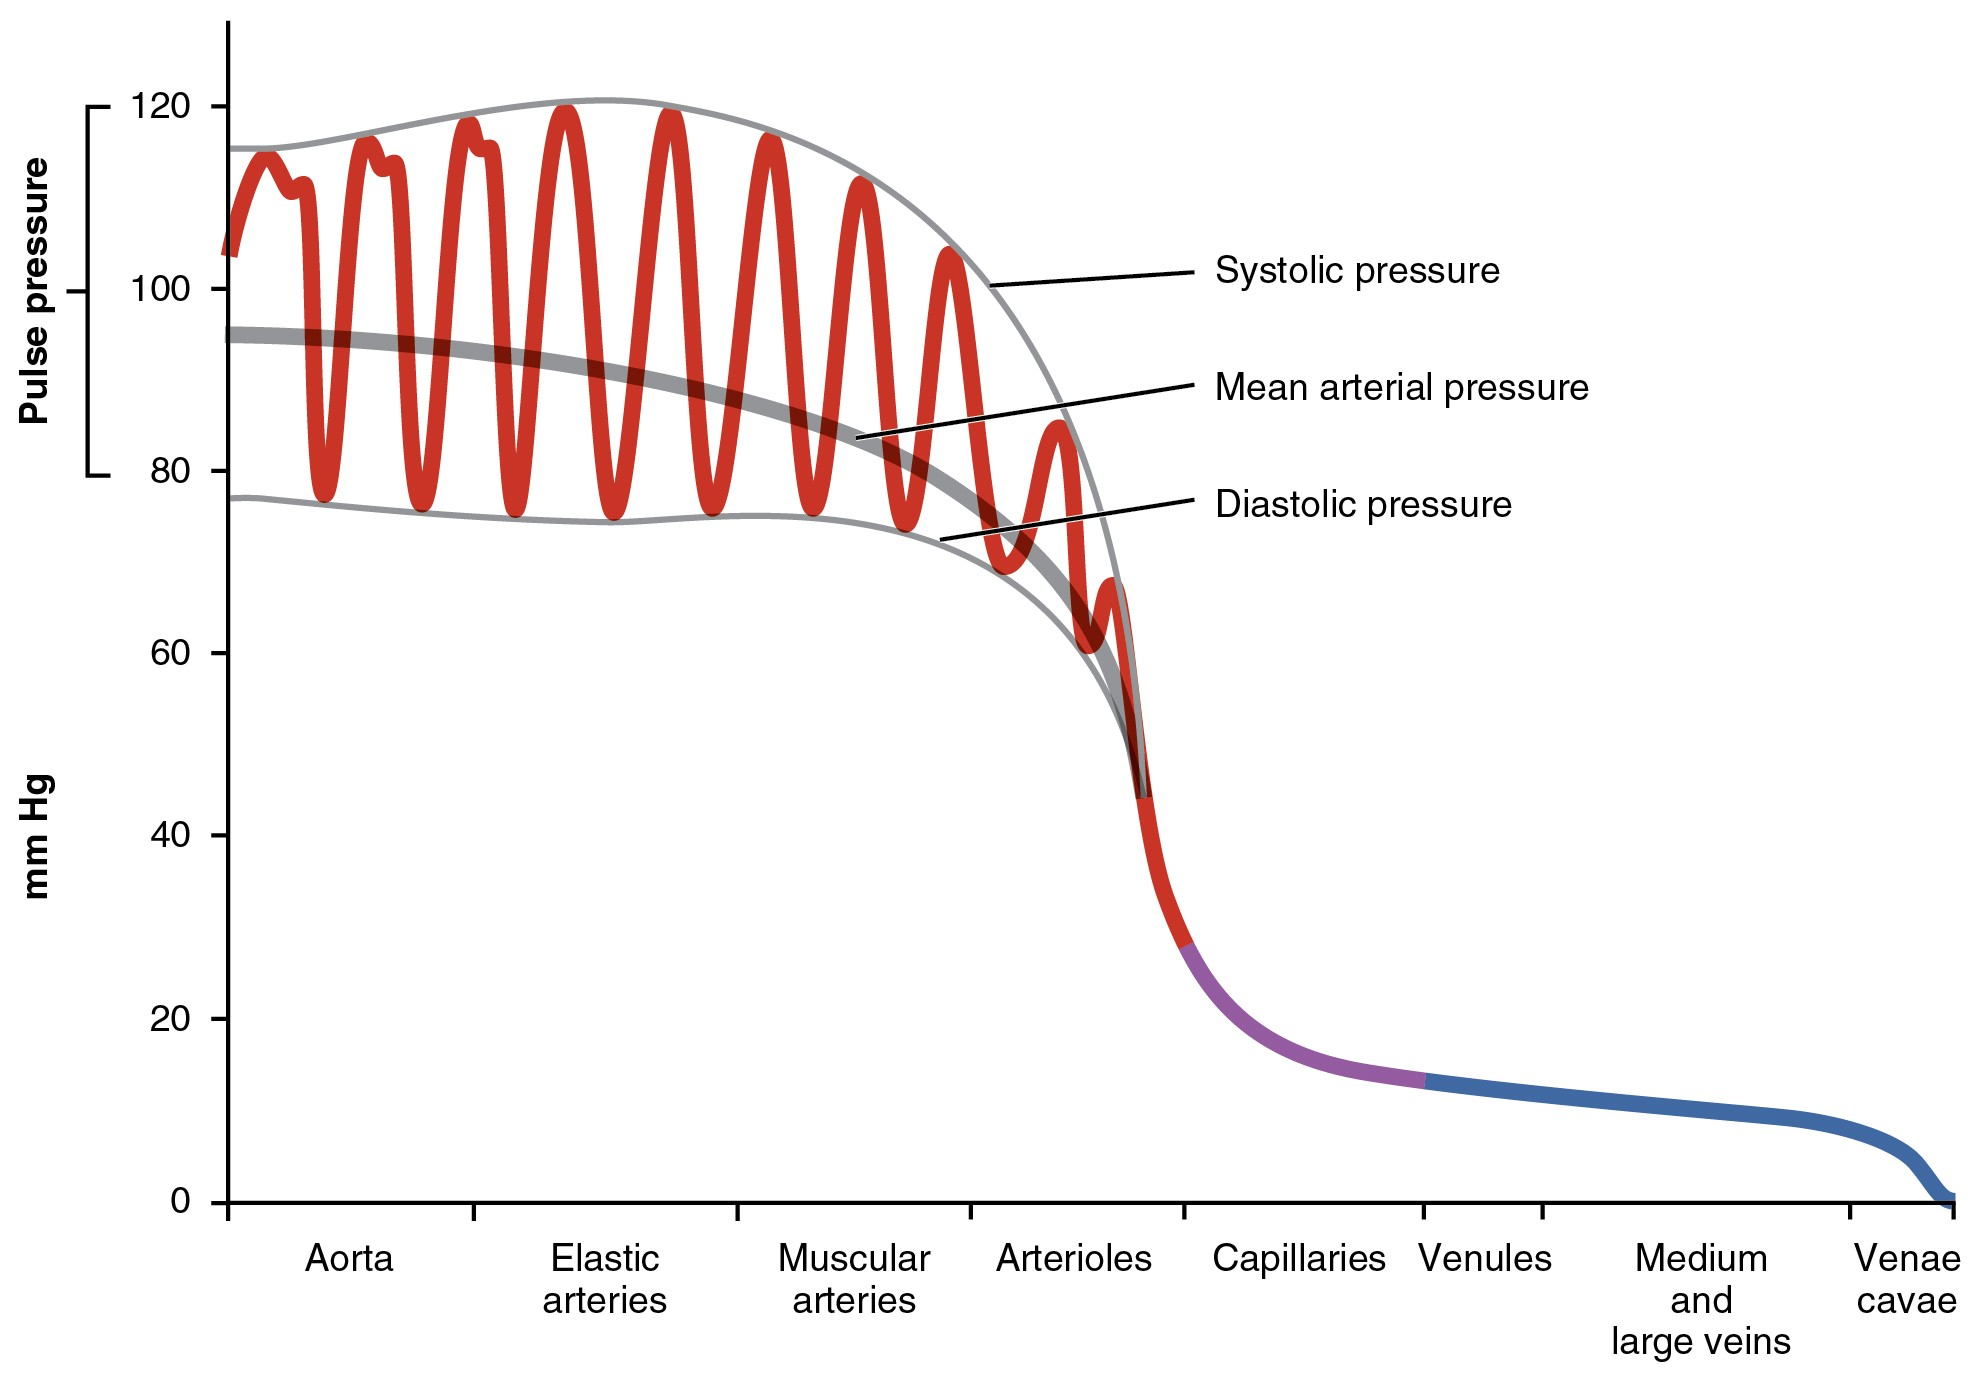 This graph shows the value of pulse pressure in different types of blood vessels